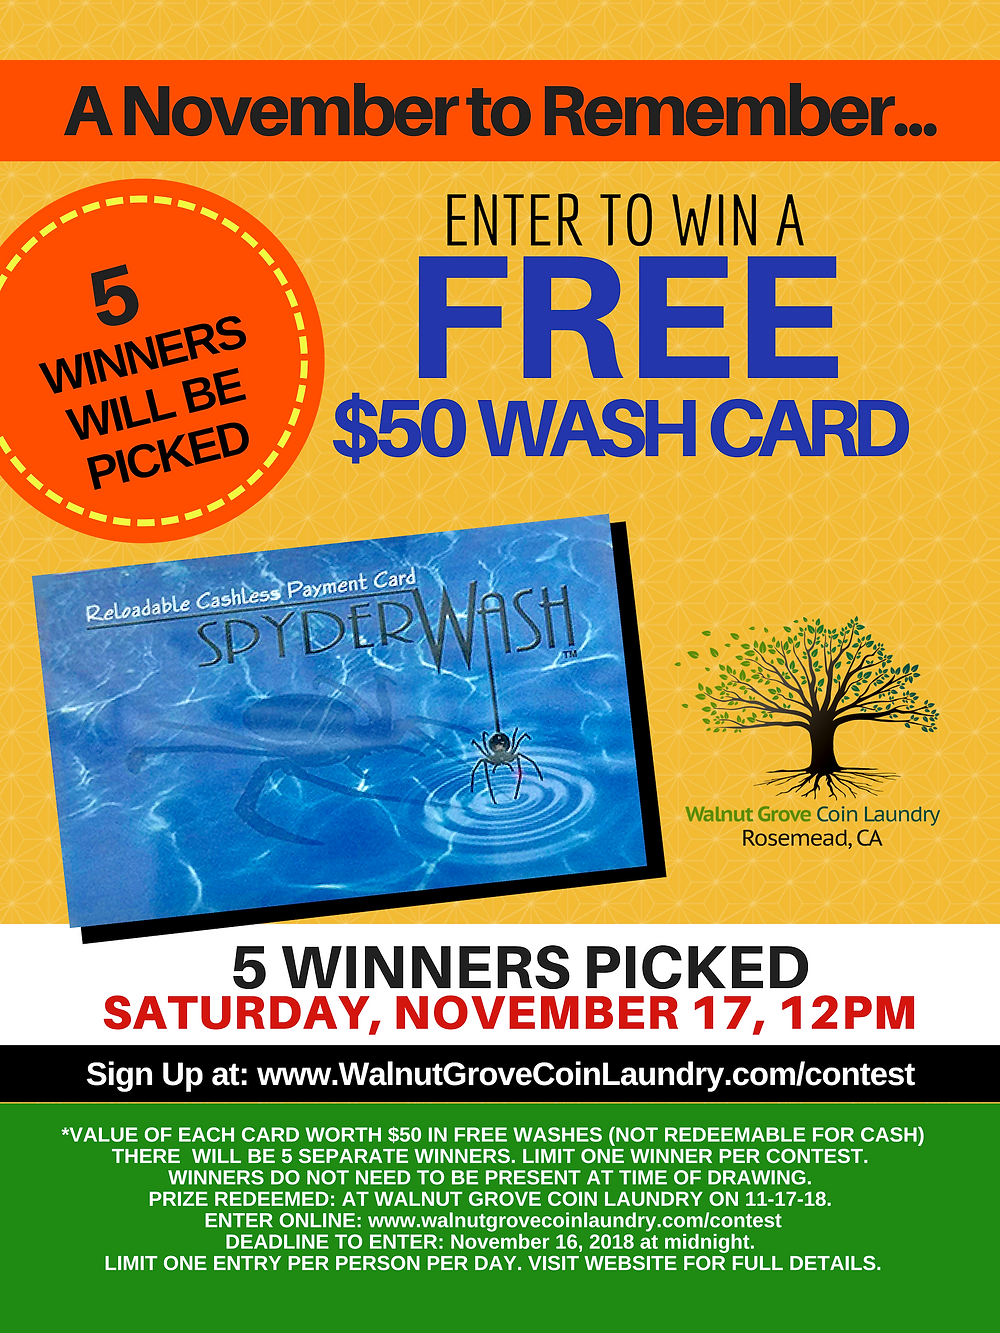 Walnut Grove Coin Laundry Contest